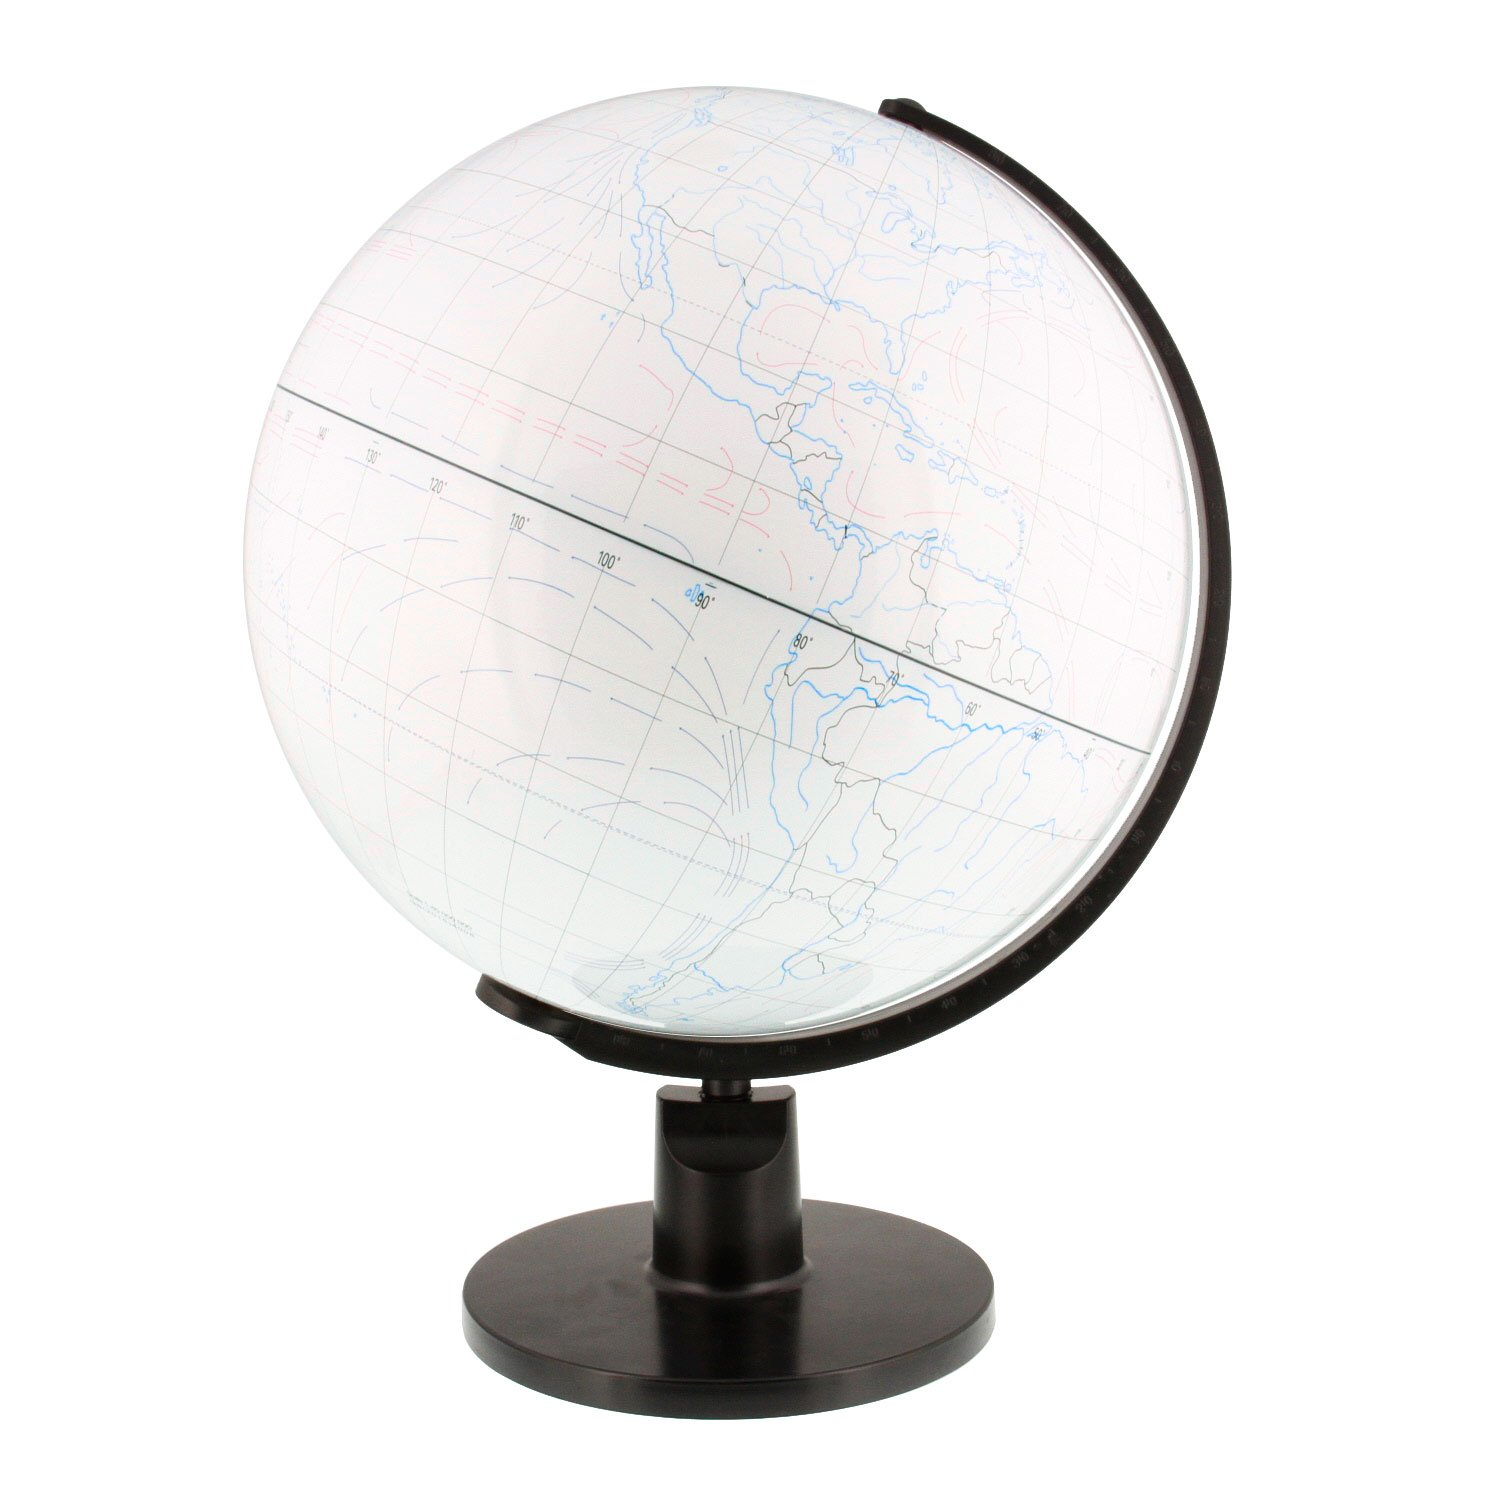 12.6'' Inch (32cm) Large White Drawing Board World Earth Globe by TCP Global